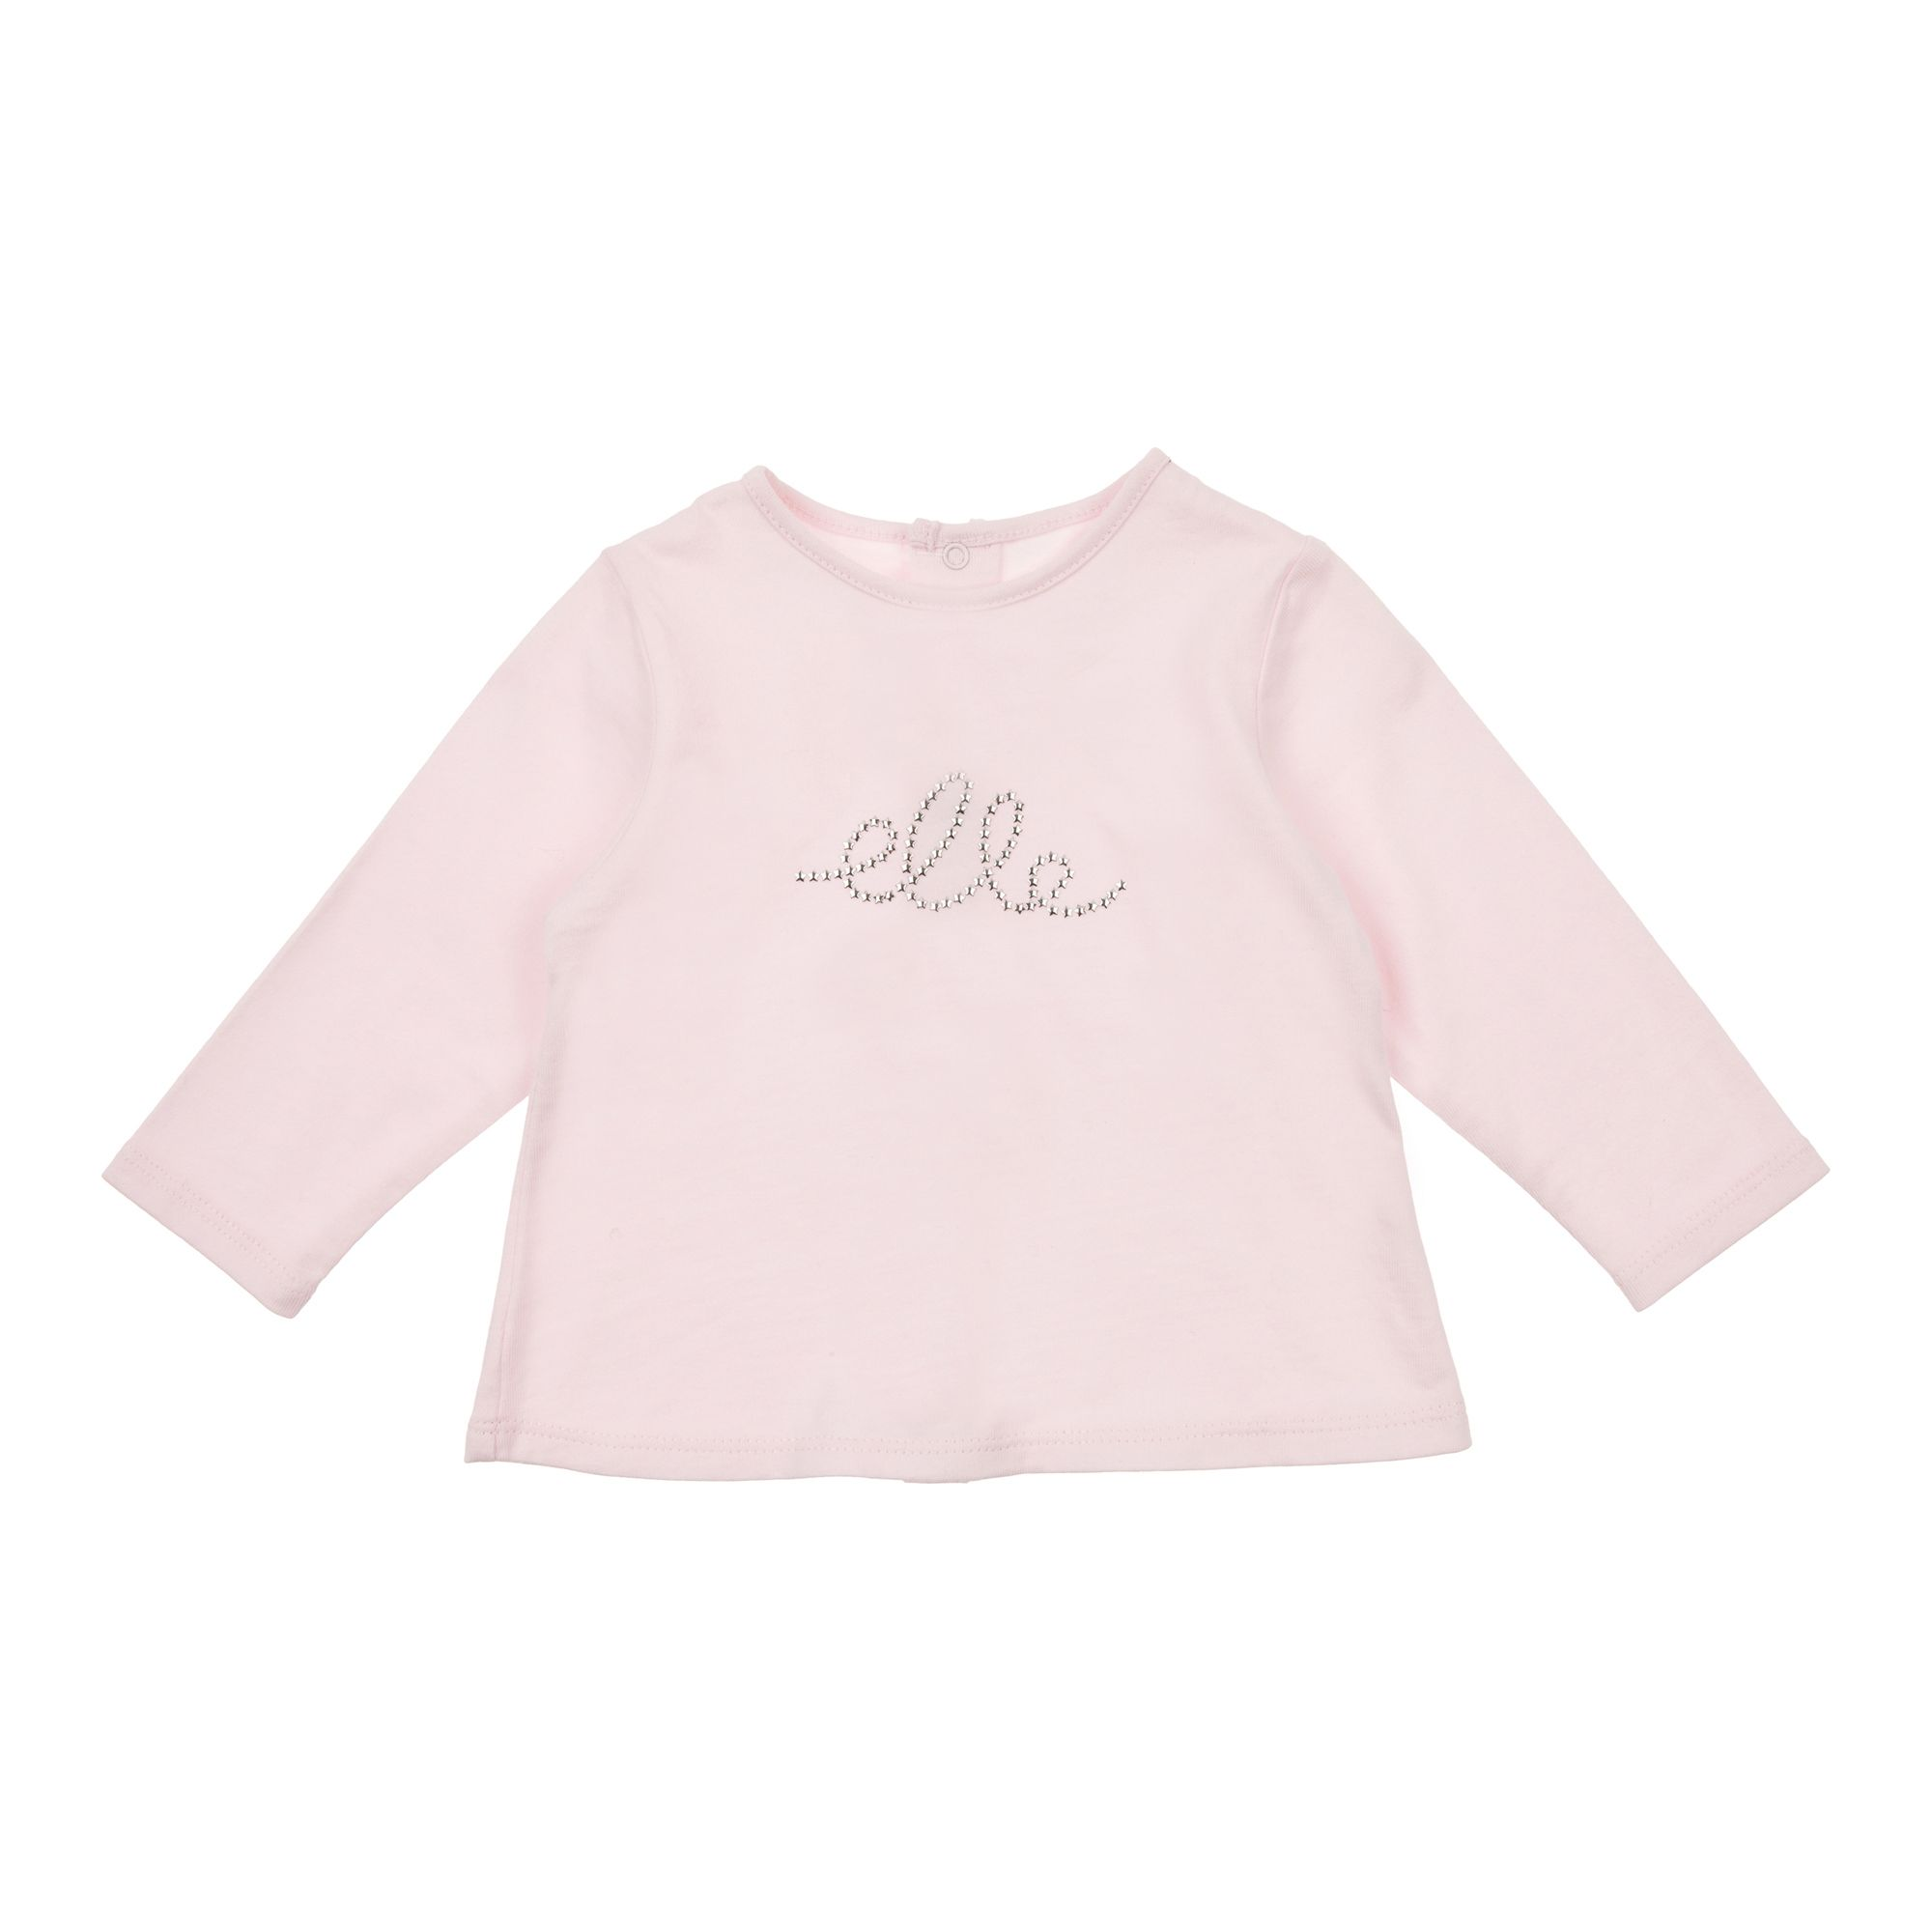 Elle Childrens Elle Long sleeved t-shirt, Pink product image